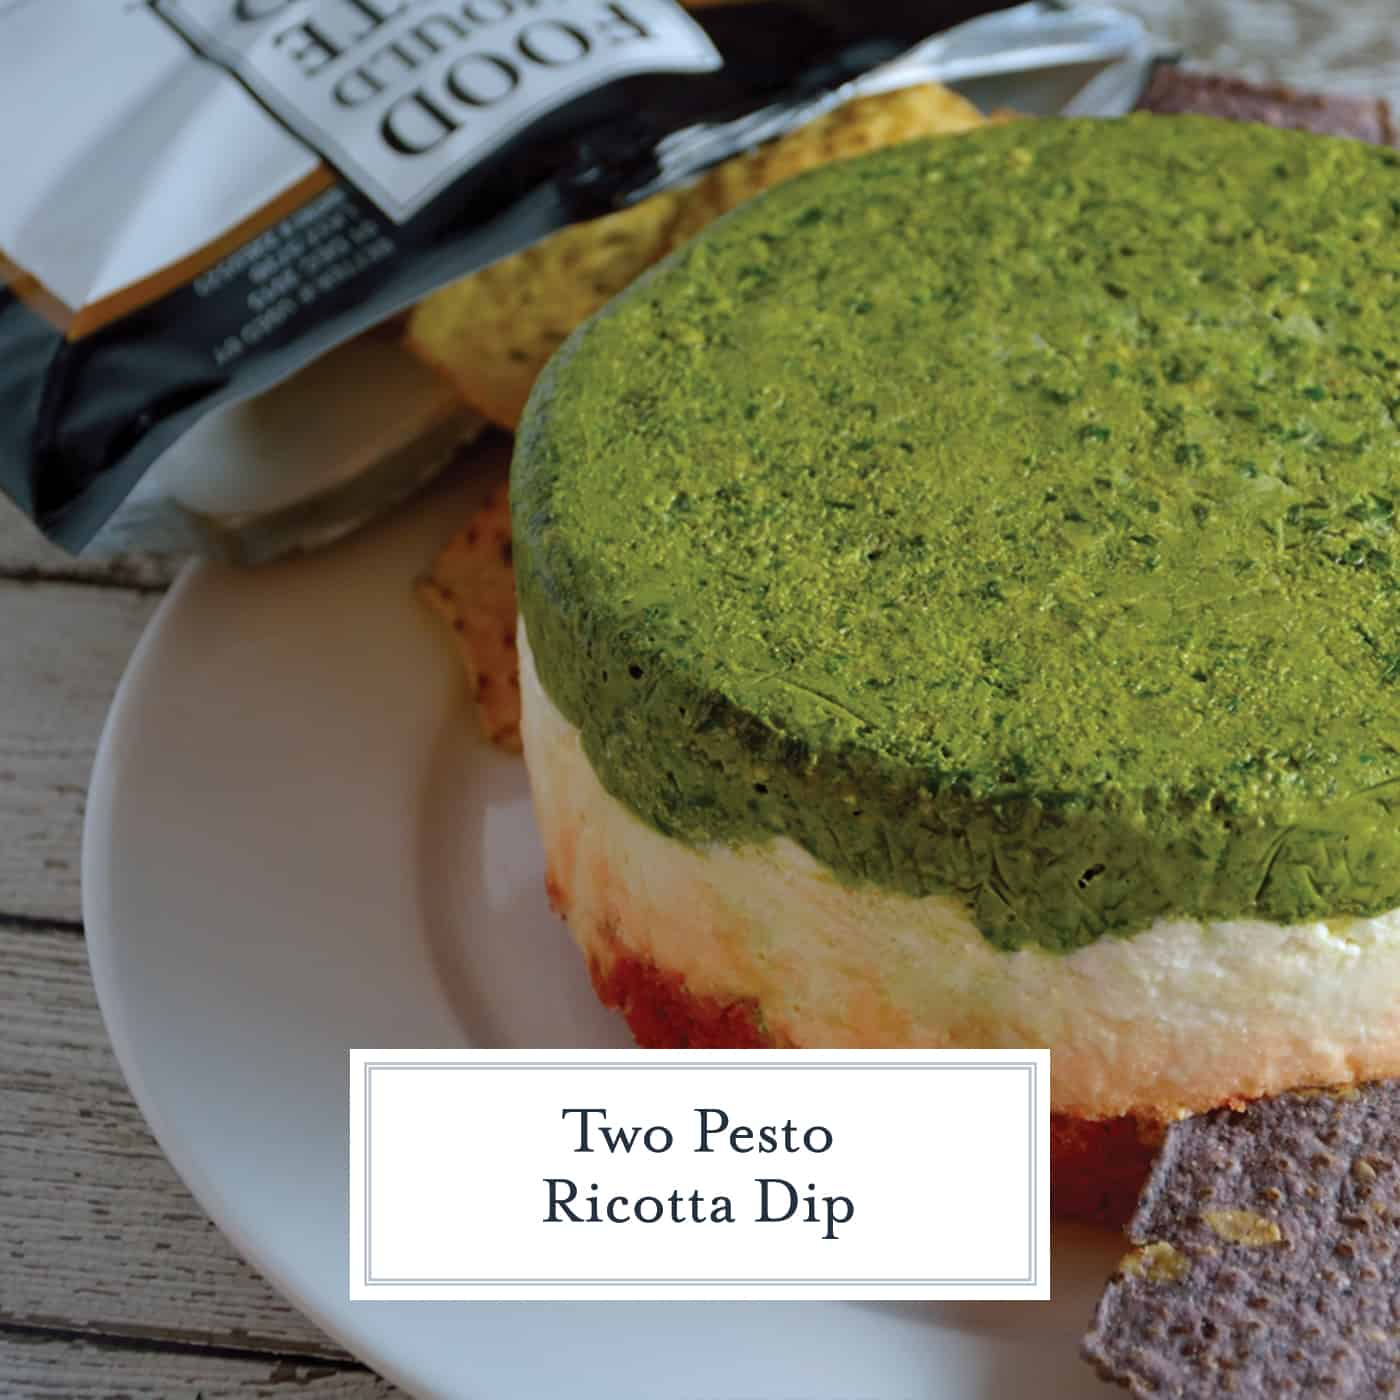 Two Pesto Ricotta Dip combines layers of traditional basil pesto, roasted red pepper and sun dried tomato pesto with ricotta, goat and Parmesan cheese. Chilled in a mold, it is a beautiful red, green and white! #pestodip #ricottadip www.savoryexperiments.com